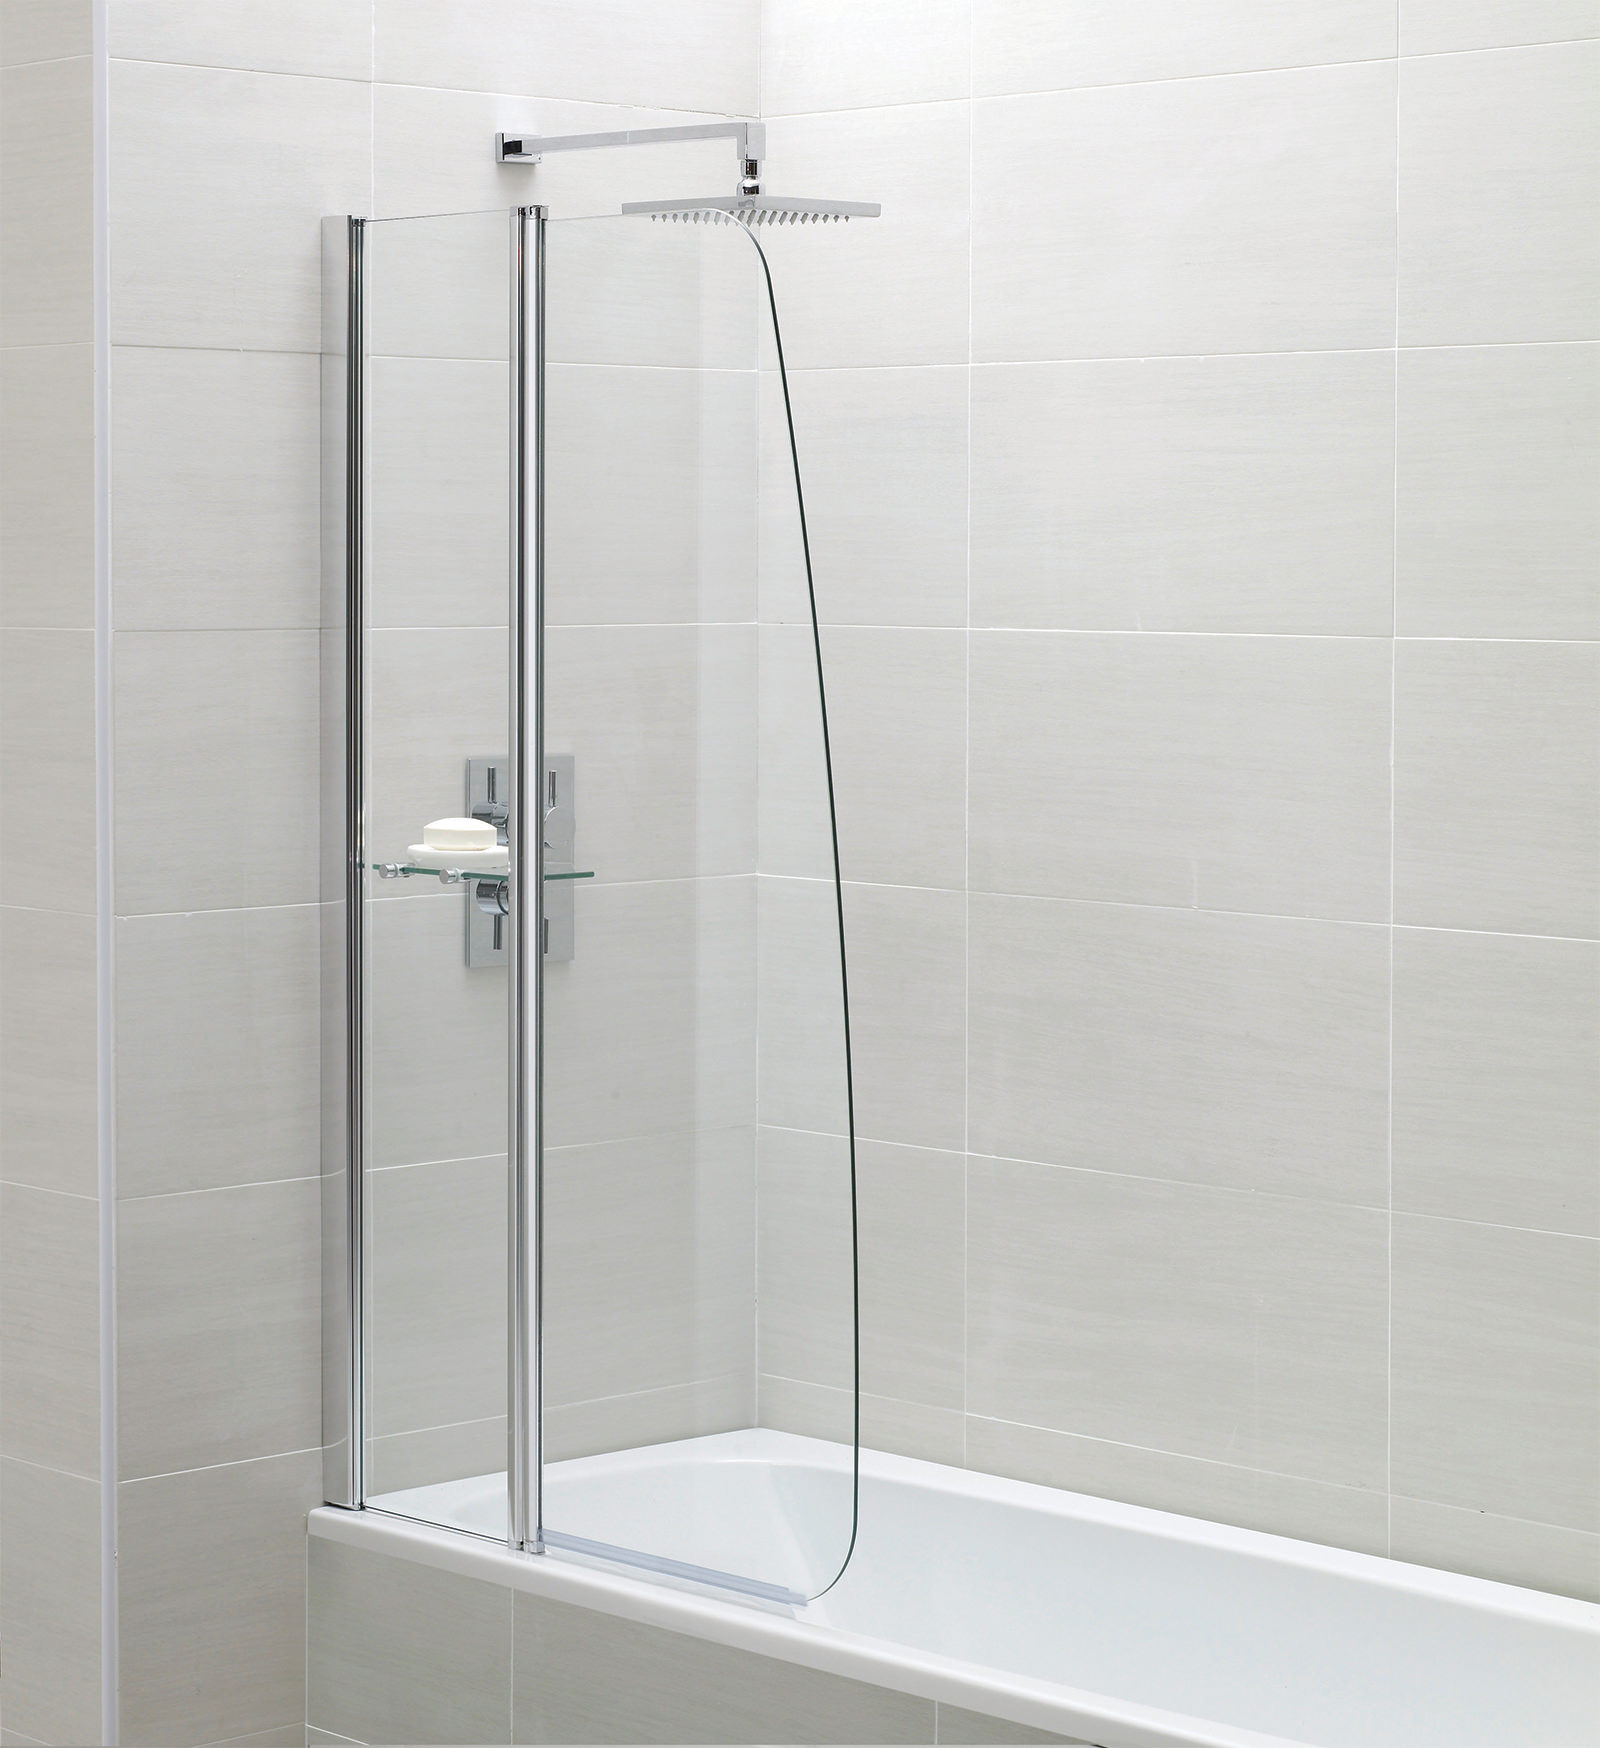 april identiti2 900 x 1400mm sail fixed panel bath screen ap9579s april identiti2 900 x 1400mm sail fixed panel bath screen